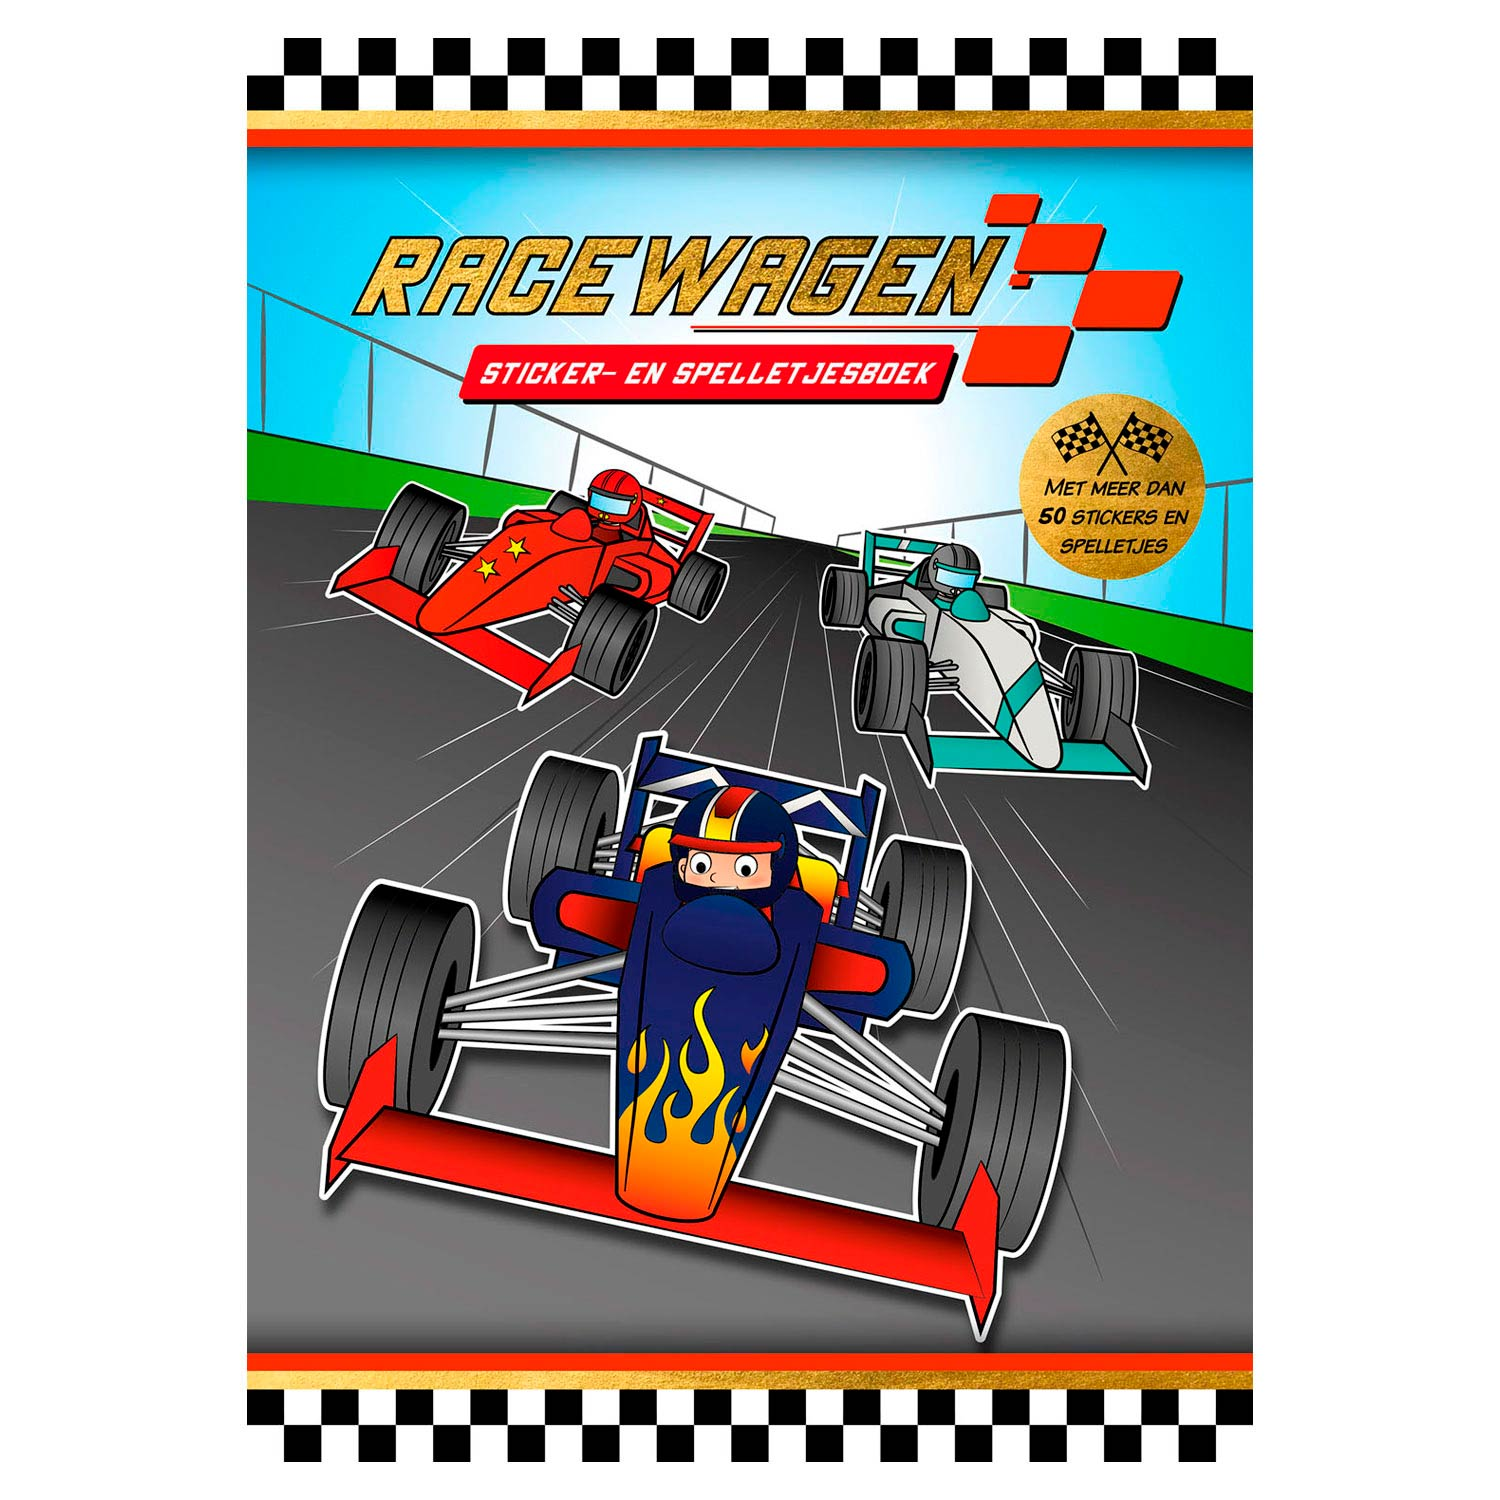 Sticker- en Spelletjesboek Racewagen